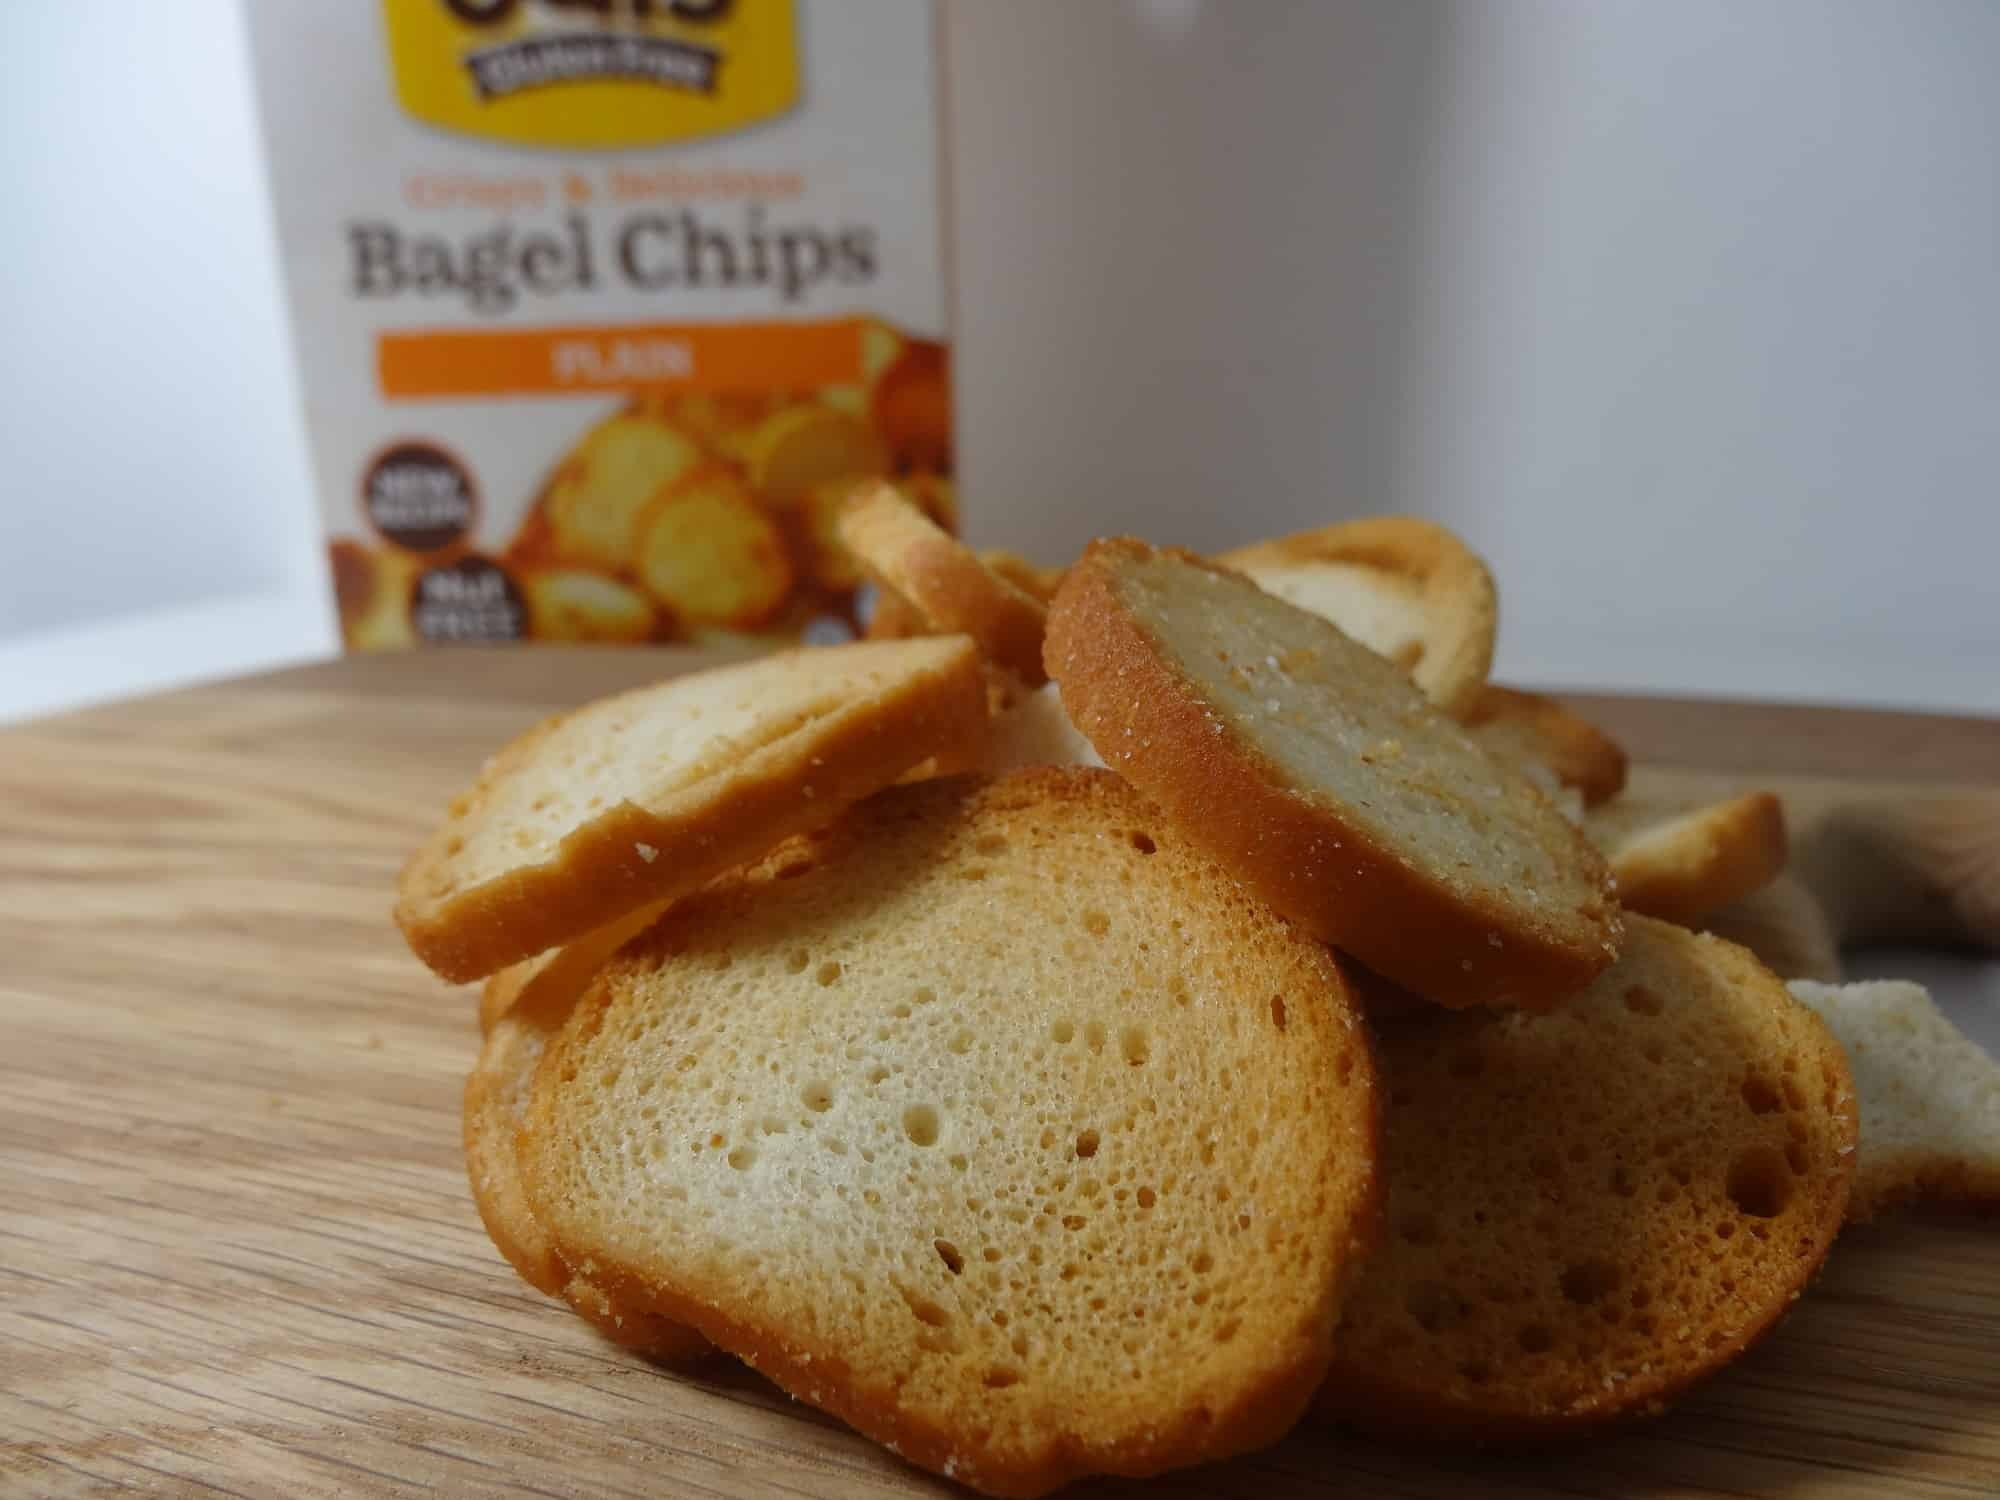 REVIEW: Udi's Gluten Free Bagel Chips – Gluten Free Croutons!